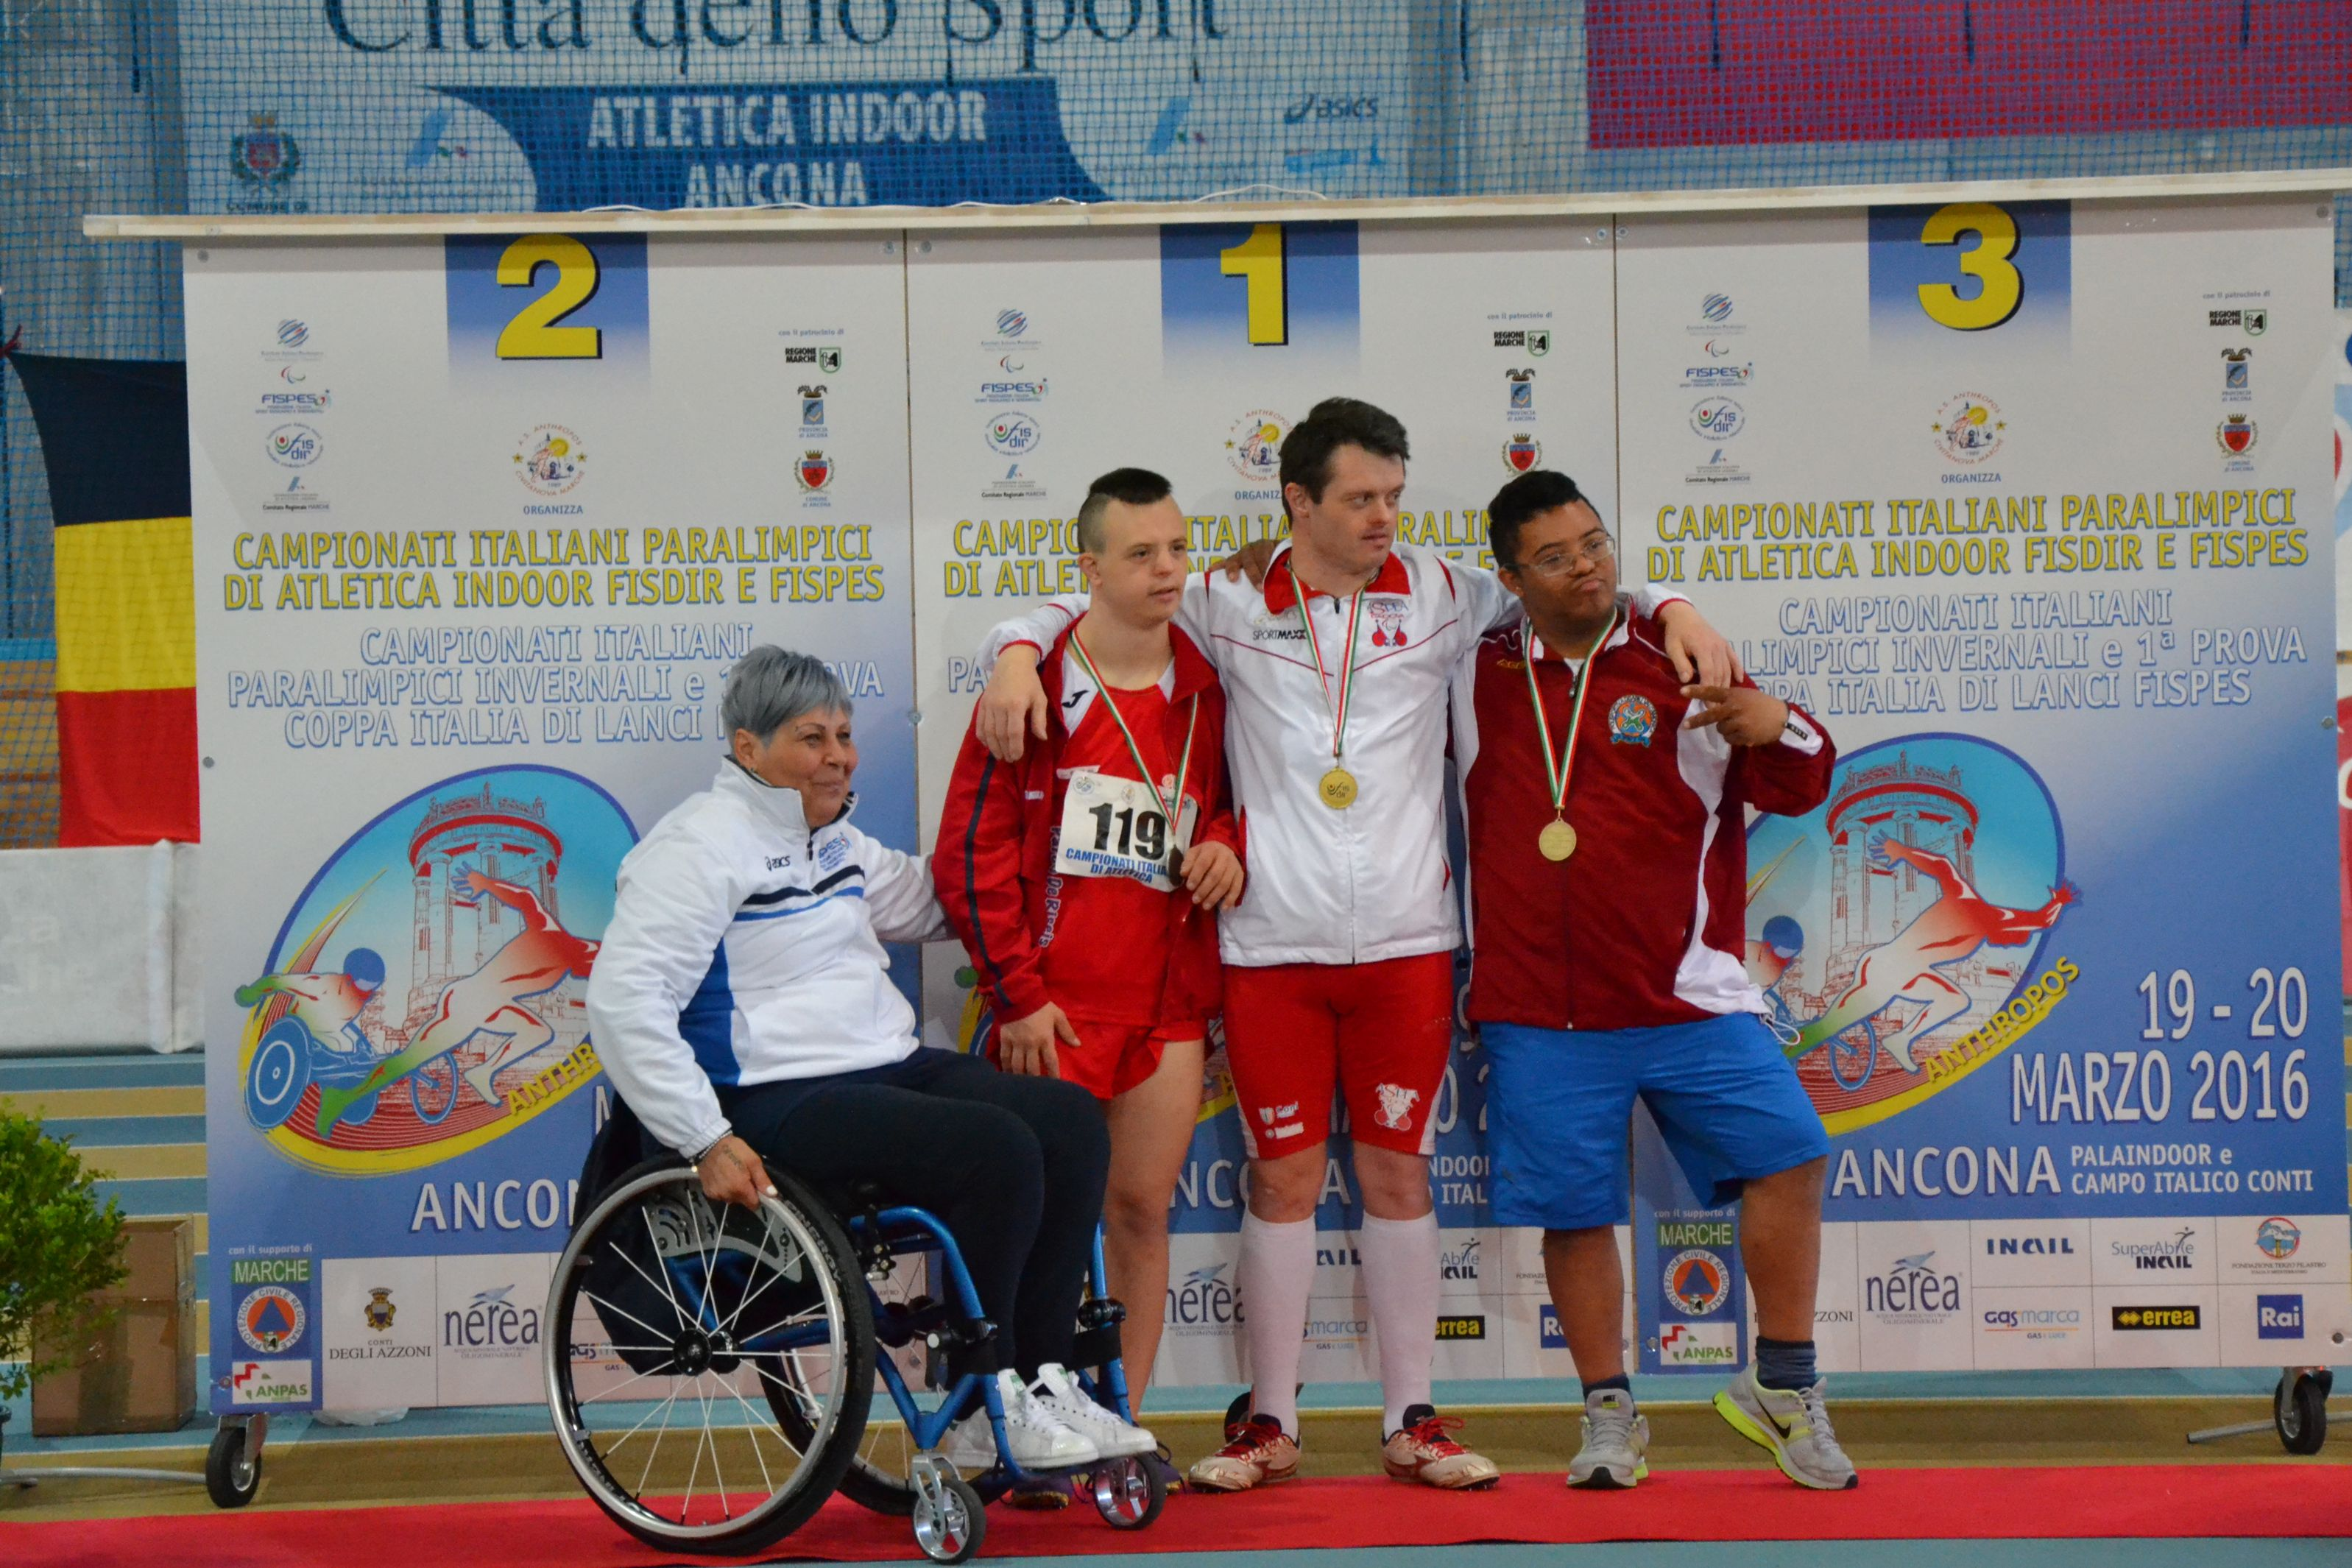 http://www.sportdisabilivalcamonica.it/wp/wp-content/uploads/2016/03/atletica-indoor2016-13.jpg